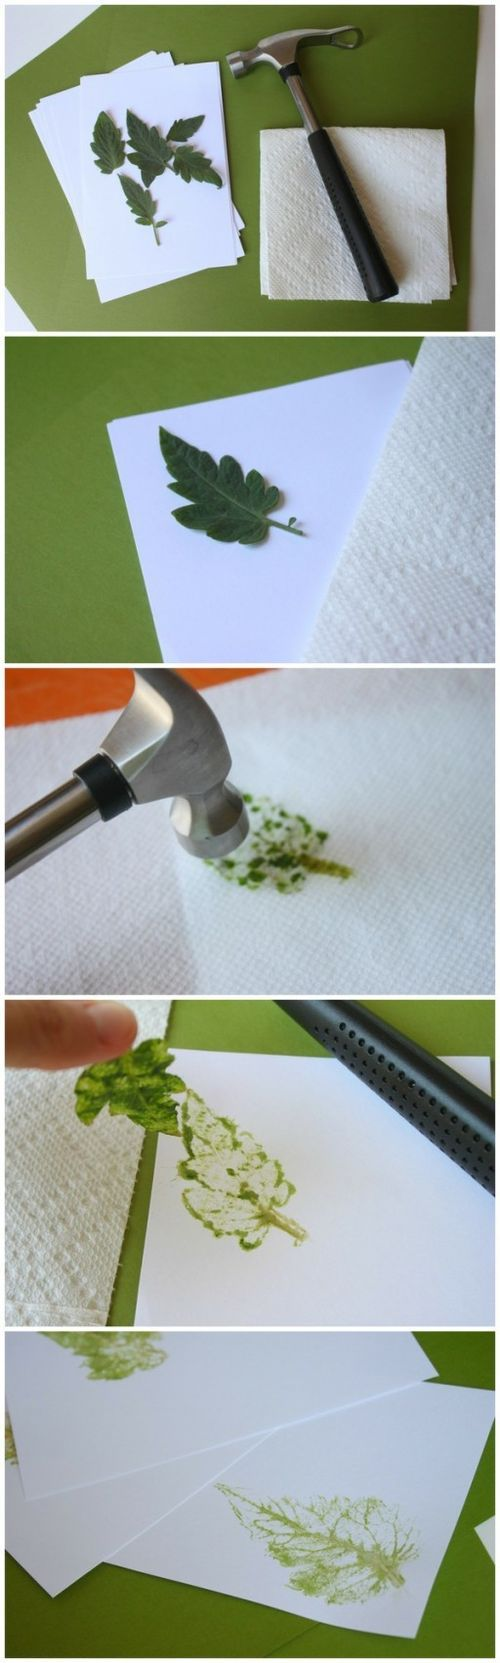 How to make cute DIY stationary with leaf stamp step by step tutorial instructions / How To Instructions on imgfave